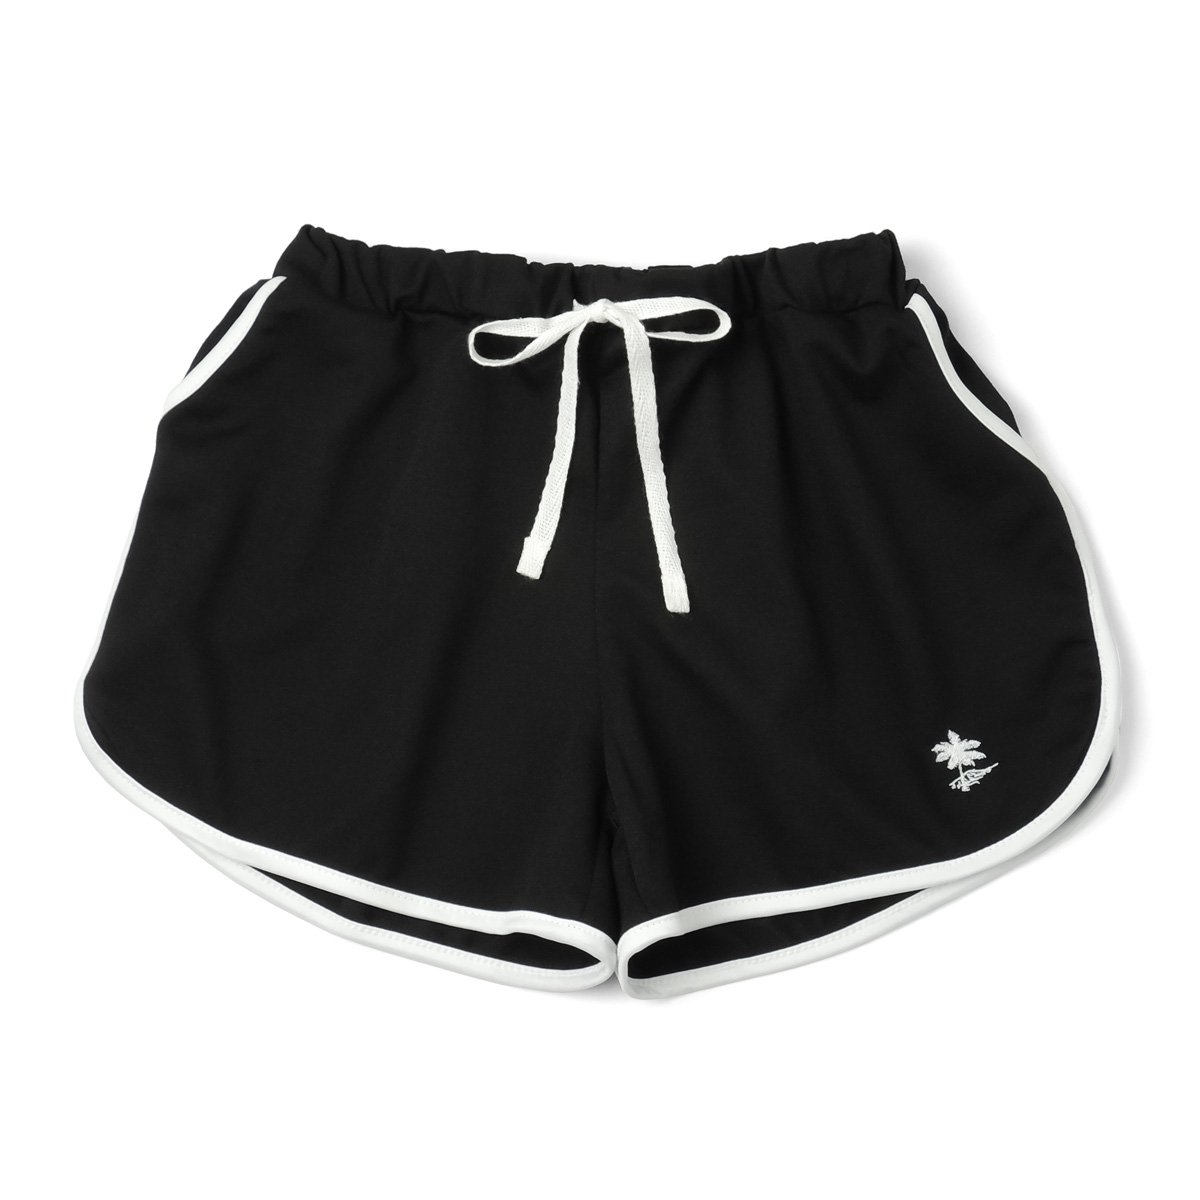 TRIM RUNNER SHORTS